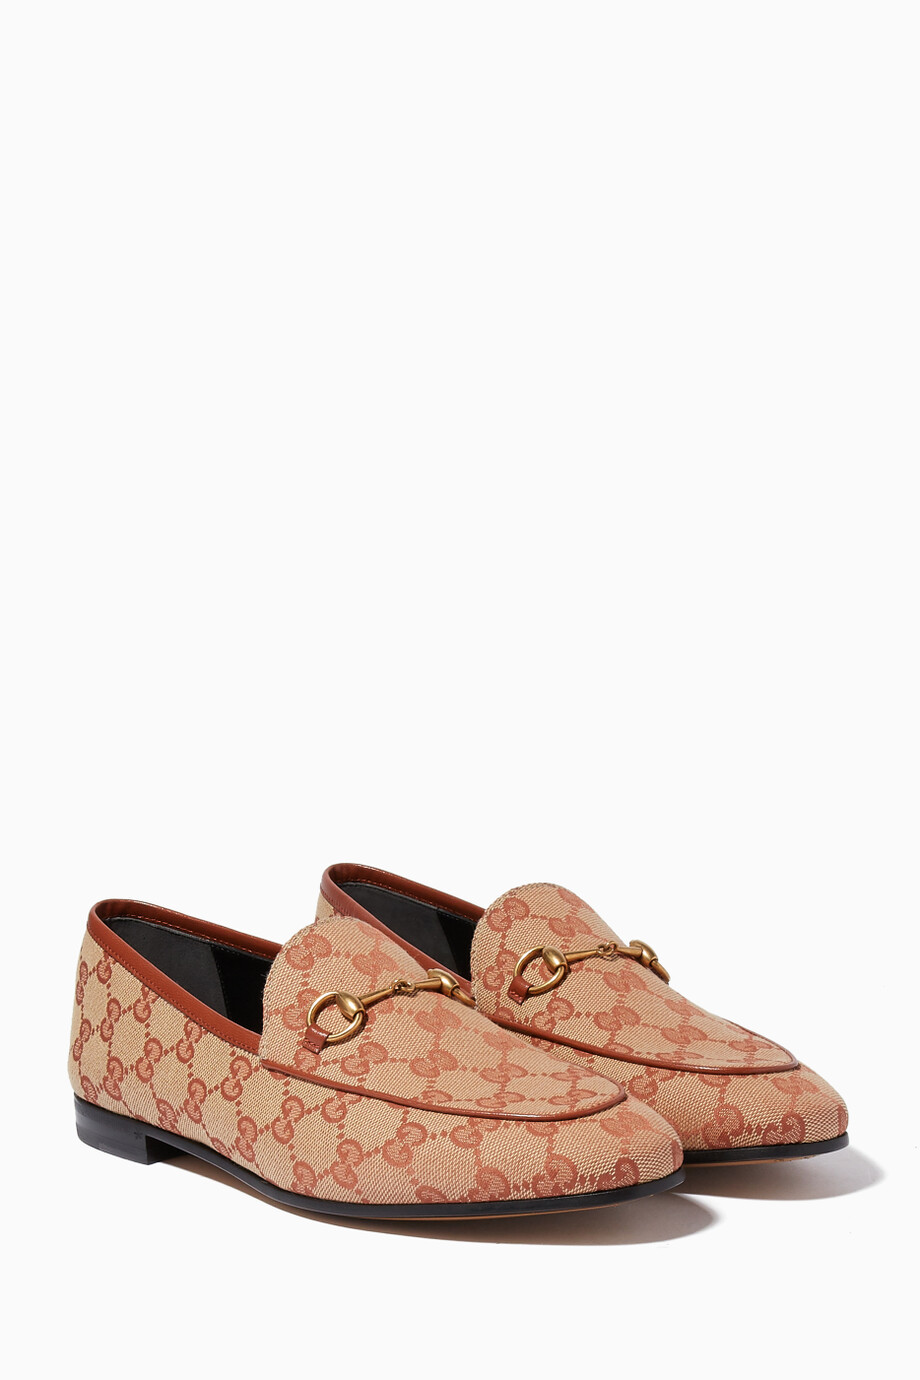 3ebd266c09f6 Shop Gucci Brown Brick Red & Beige Jordaan GG Canvas Loafers for ...